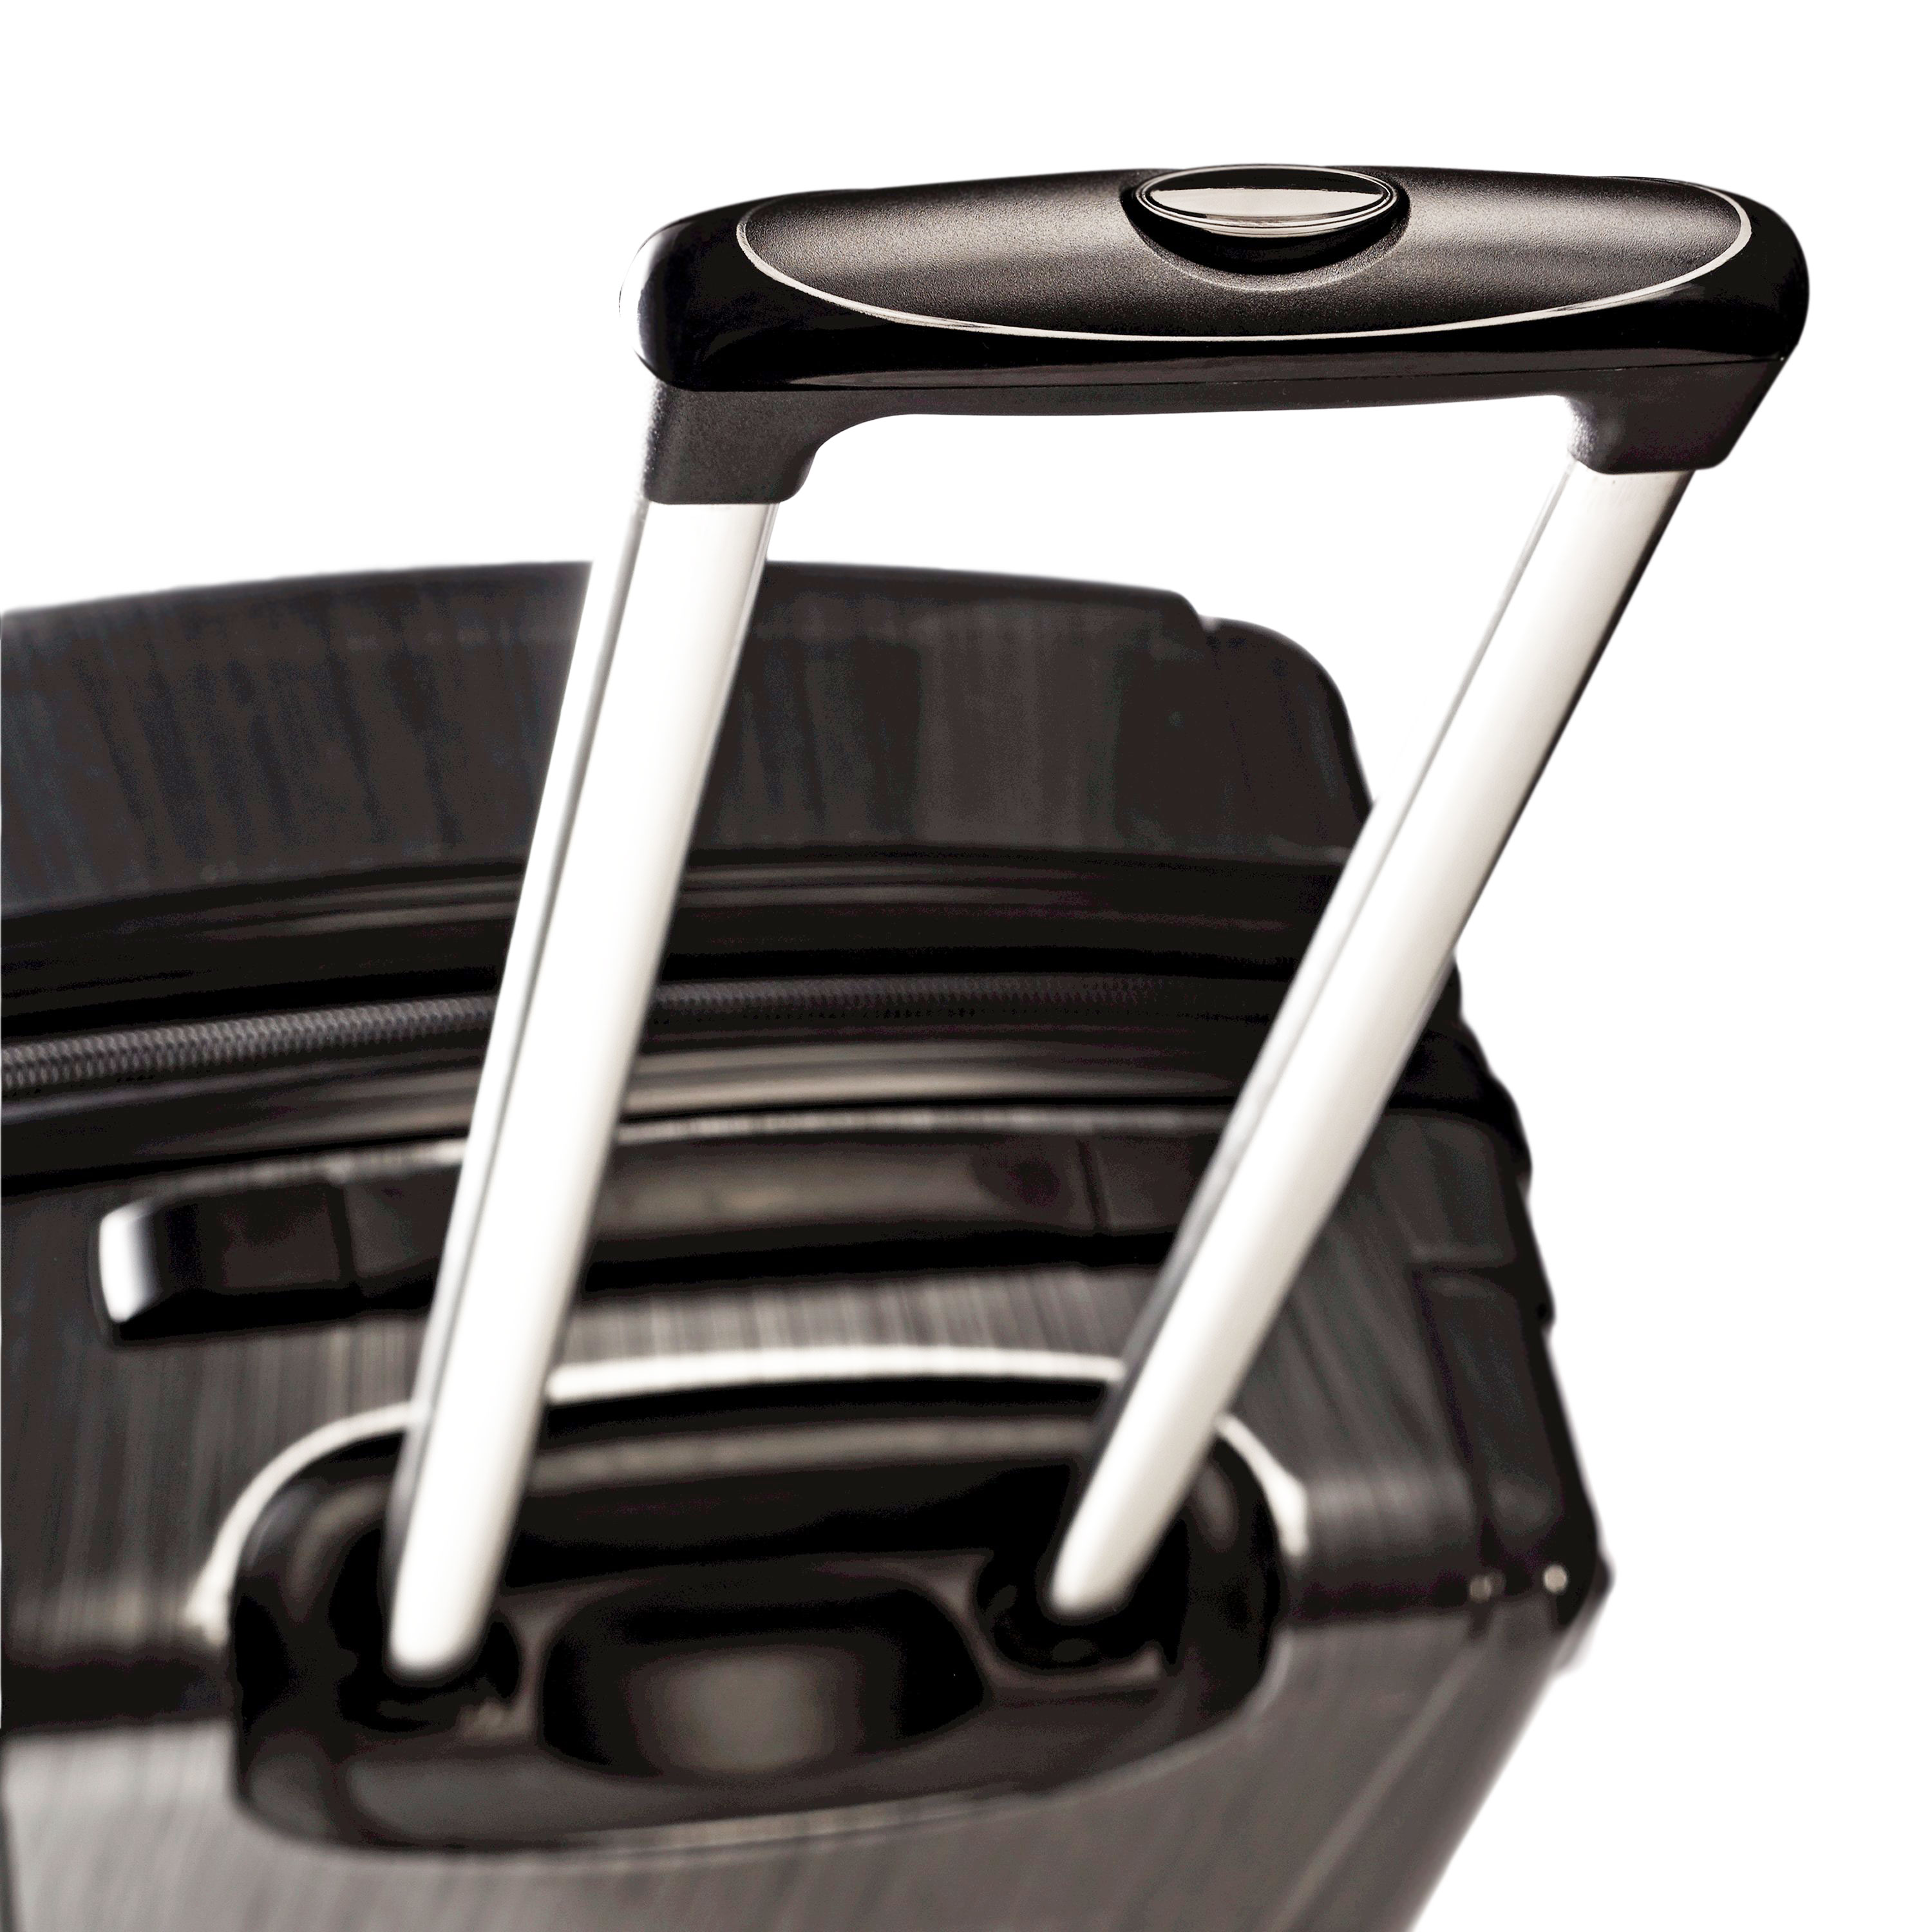 Samsonite-Winfield-2-Fashion-Spinner-Luggage thumbnail 15